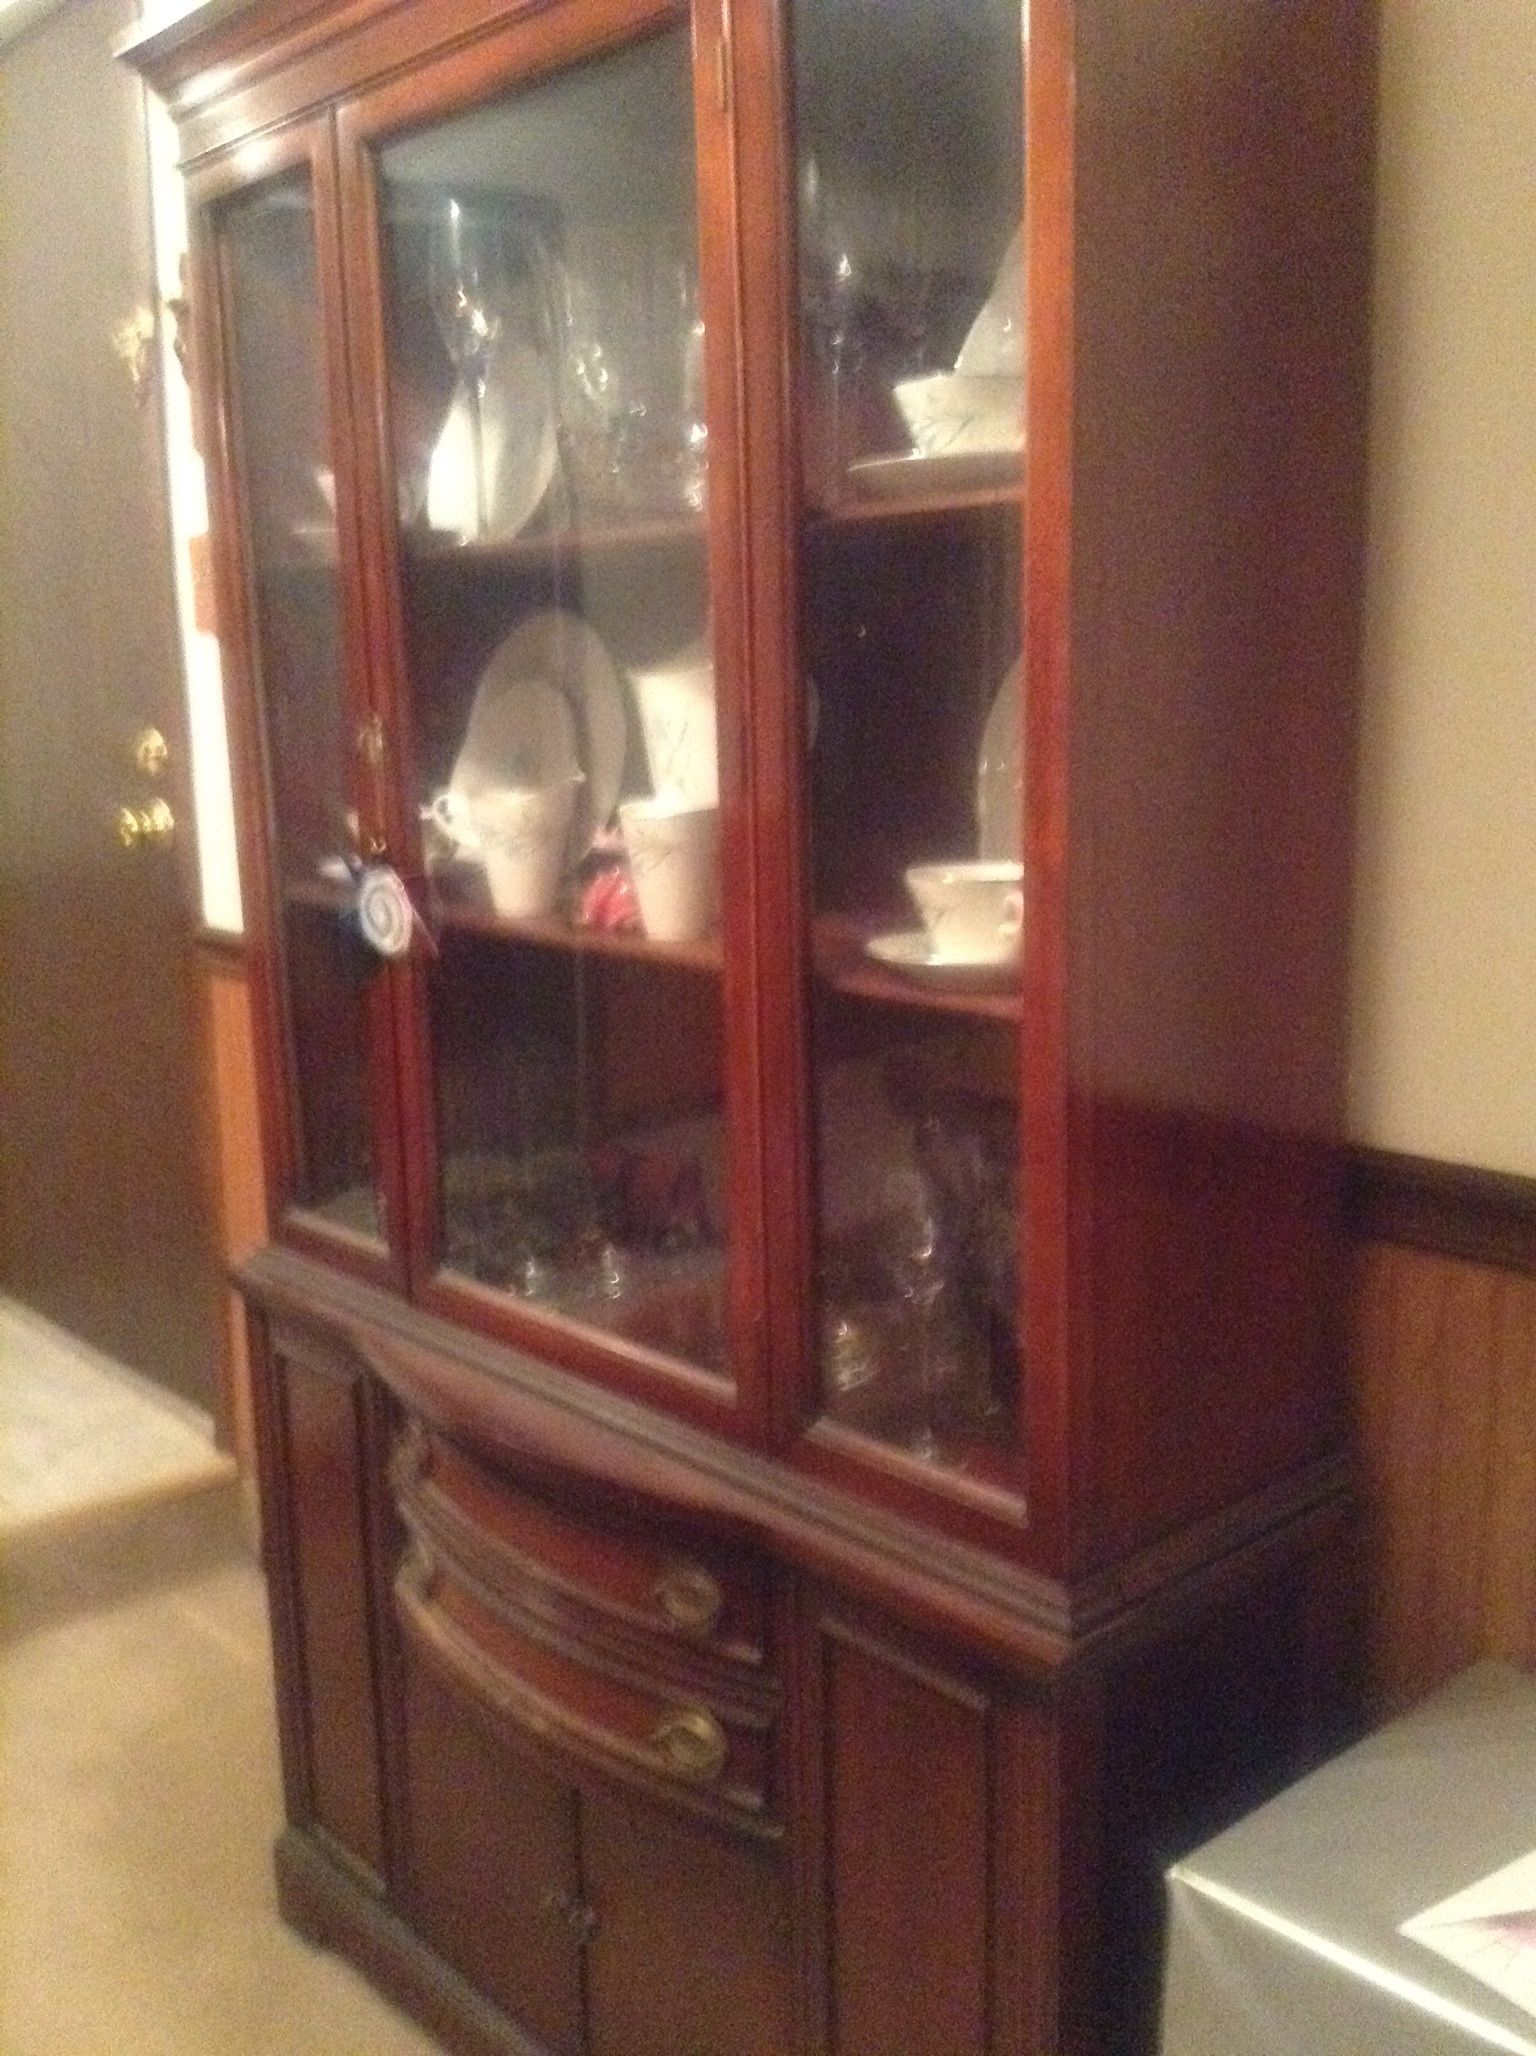 1947 Duncan Phyfe Mahogany China Cabinet in Cwoods Garage Sale in Crestwood  , IL for $500. 1947 Duncan Phyfe Chia Cabinet. Good condition. - 1947 Duncan Phyfe Mahogany China Cabinet In Cwood's Garage Sale